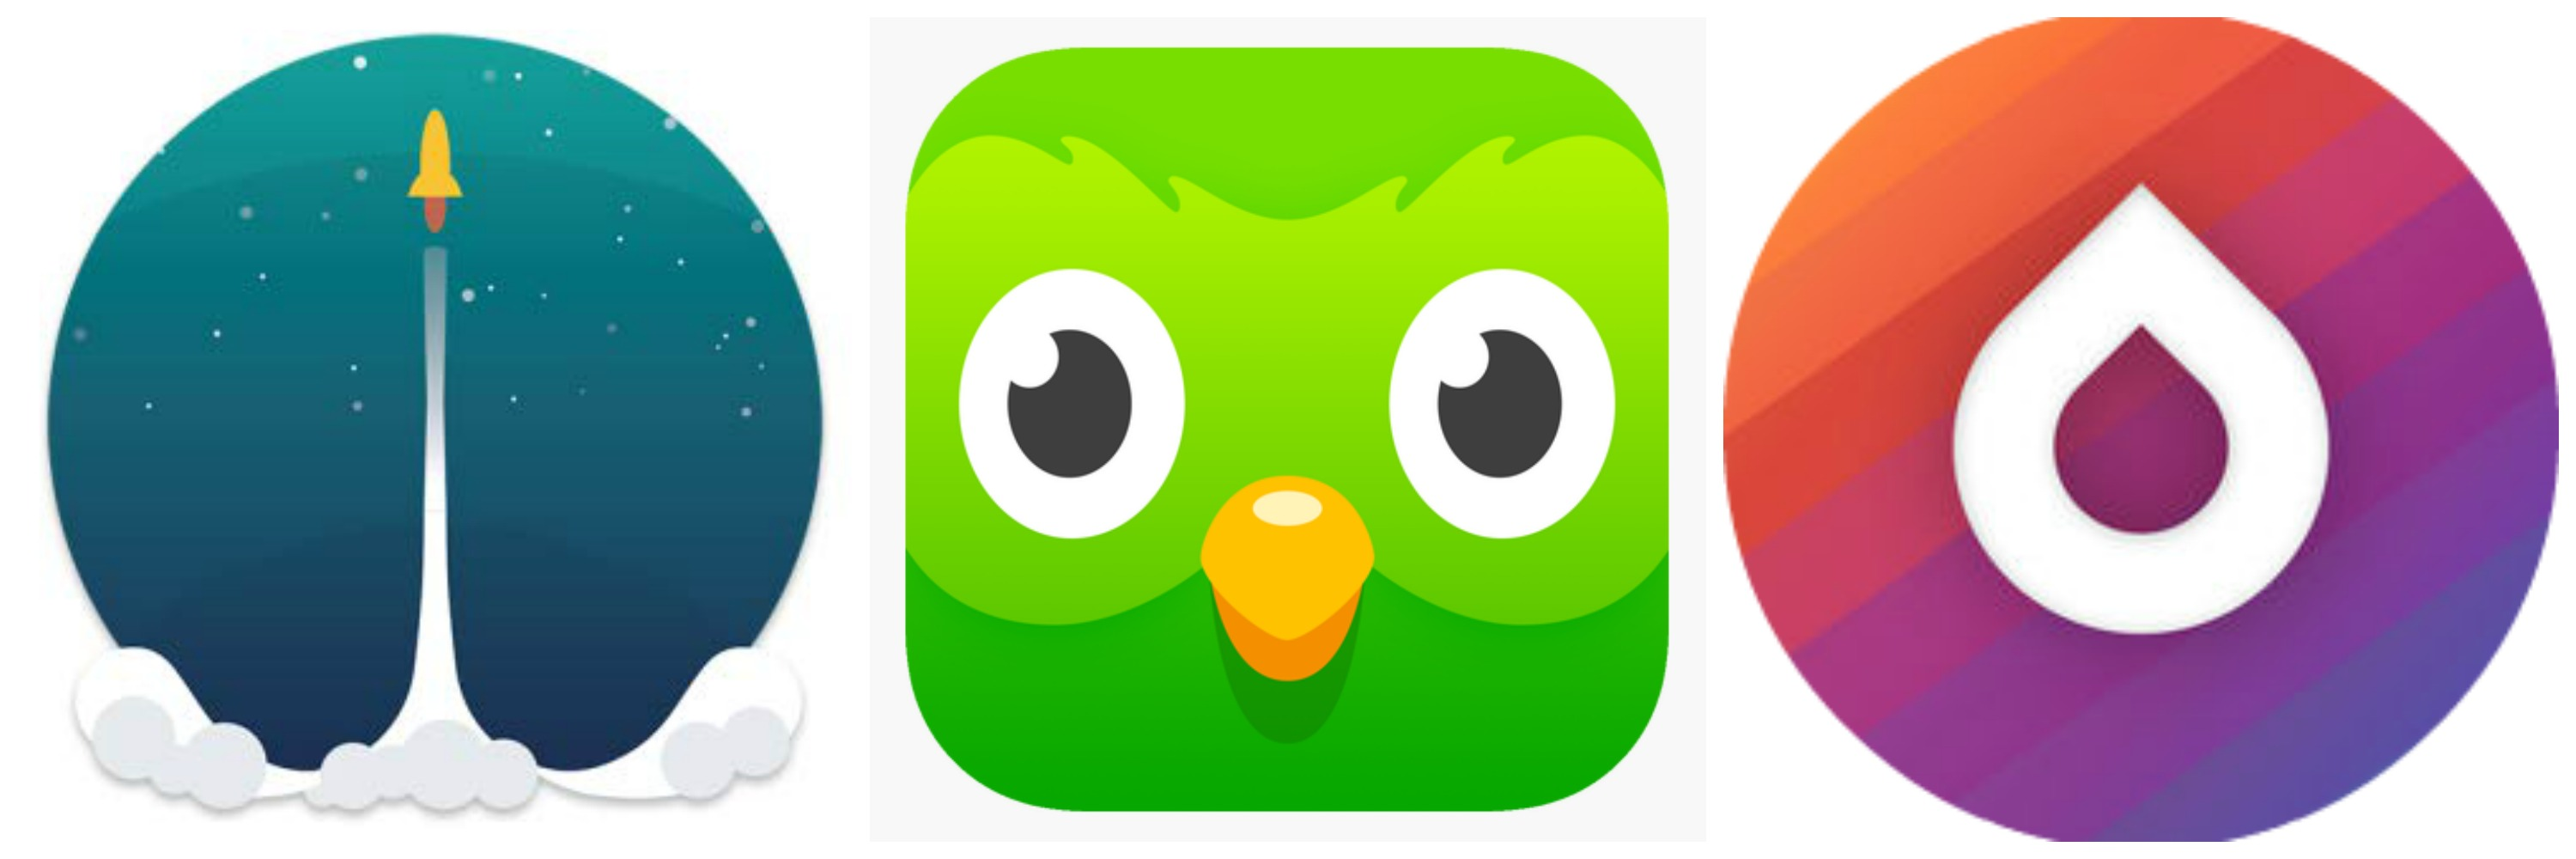 Apps to learn your mission language duolingo memrise drops